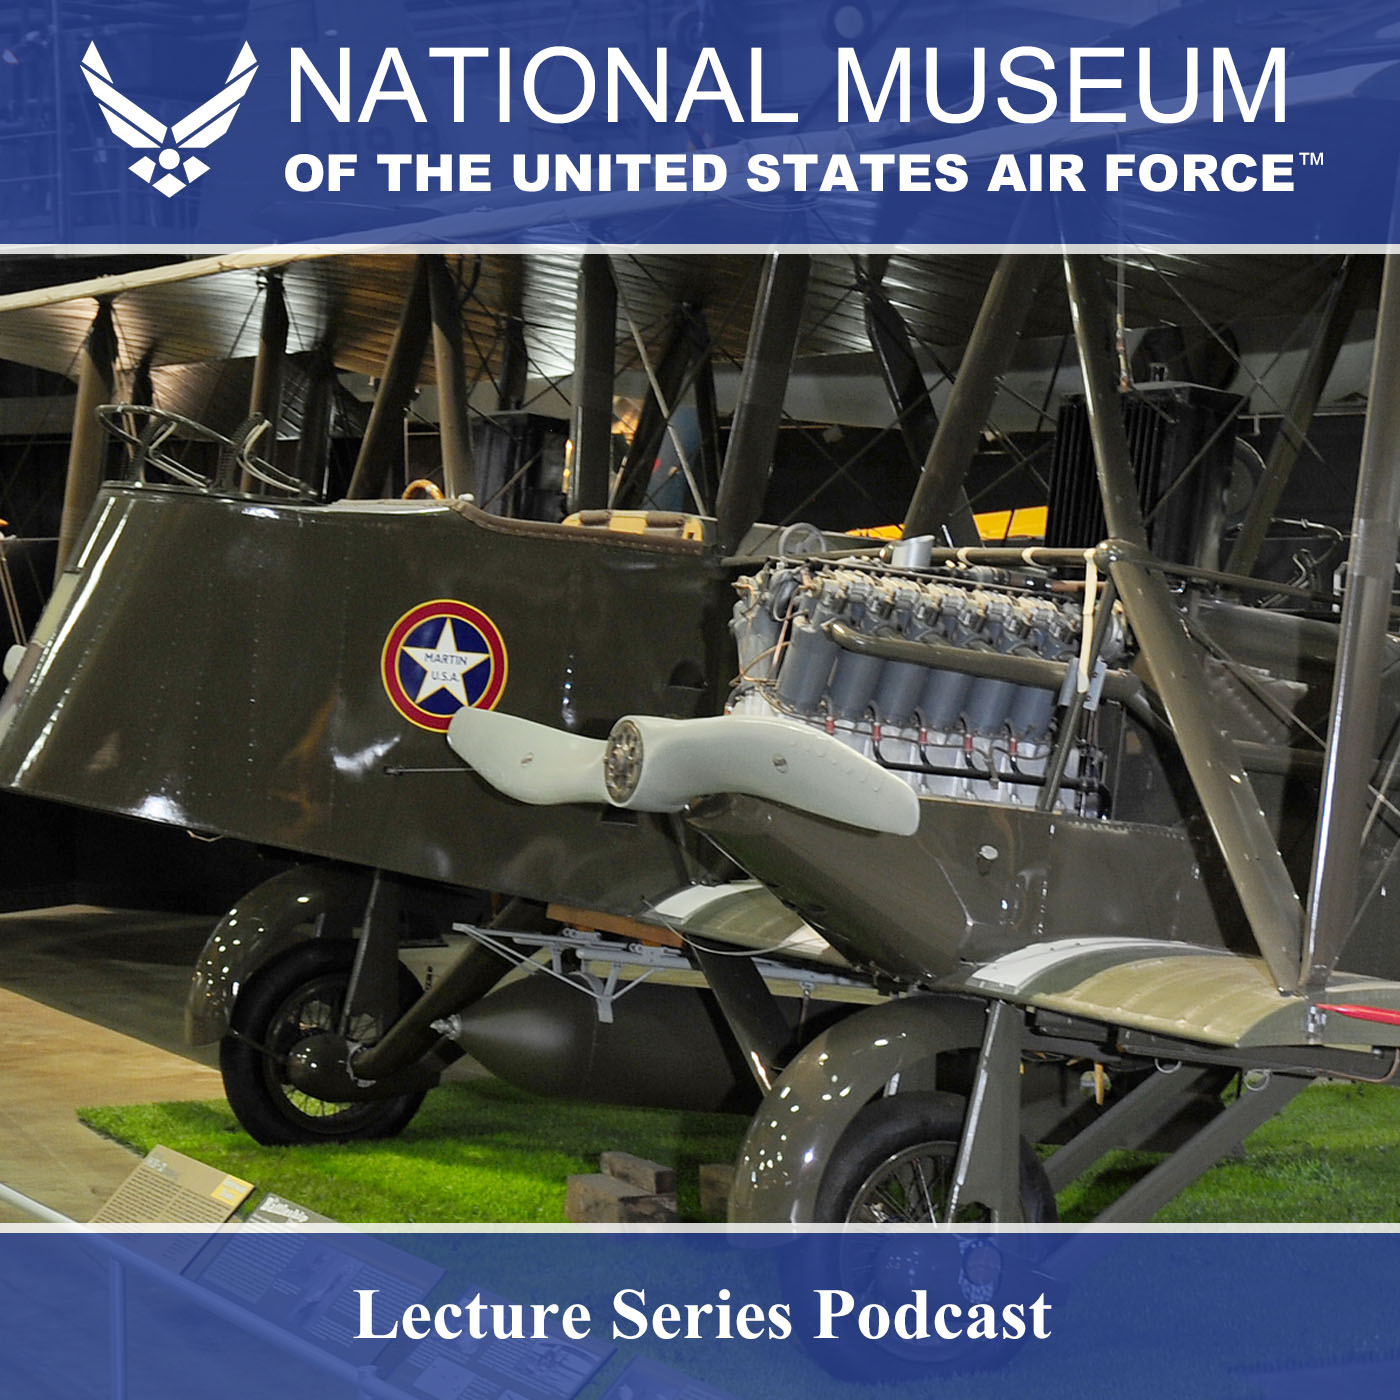 Subscribe to Lecture Series Podcast